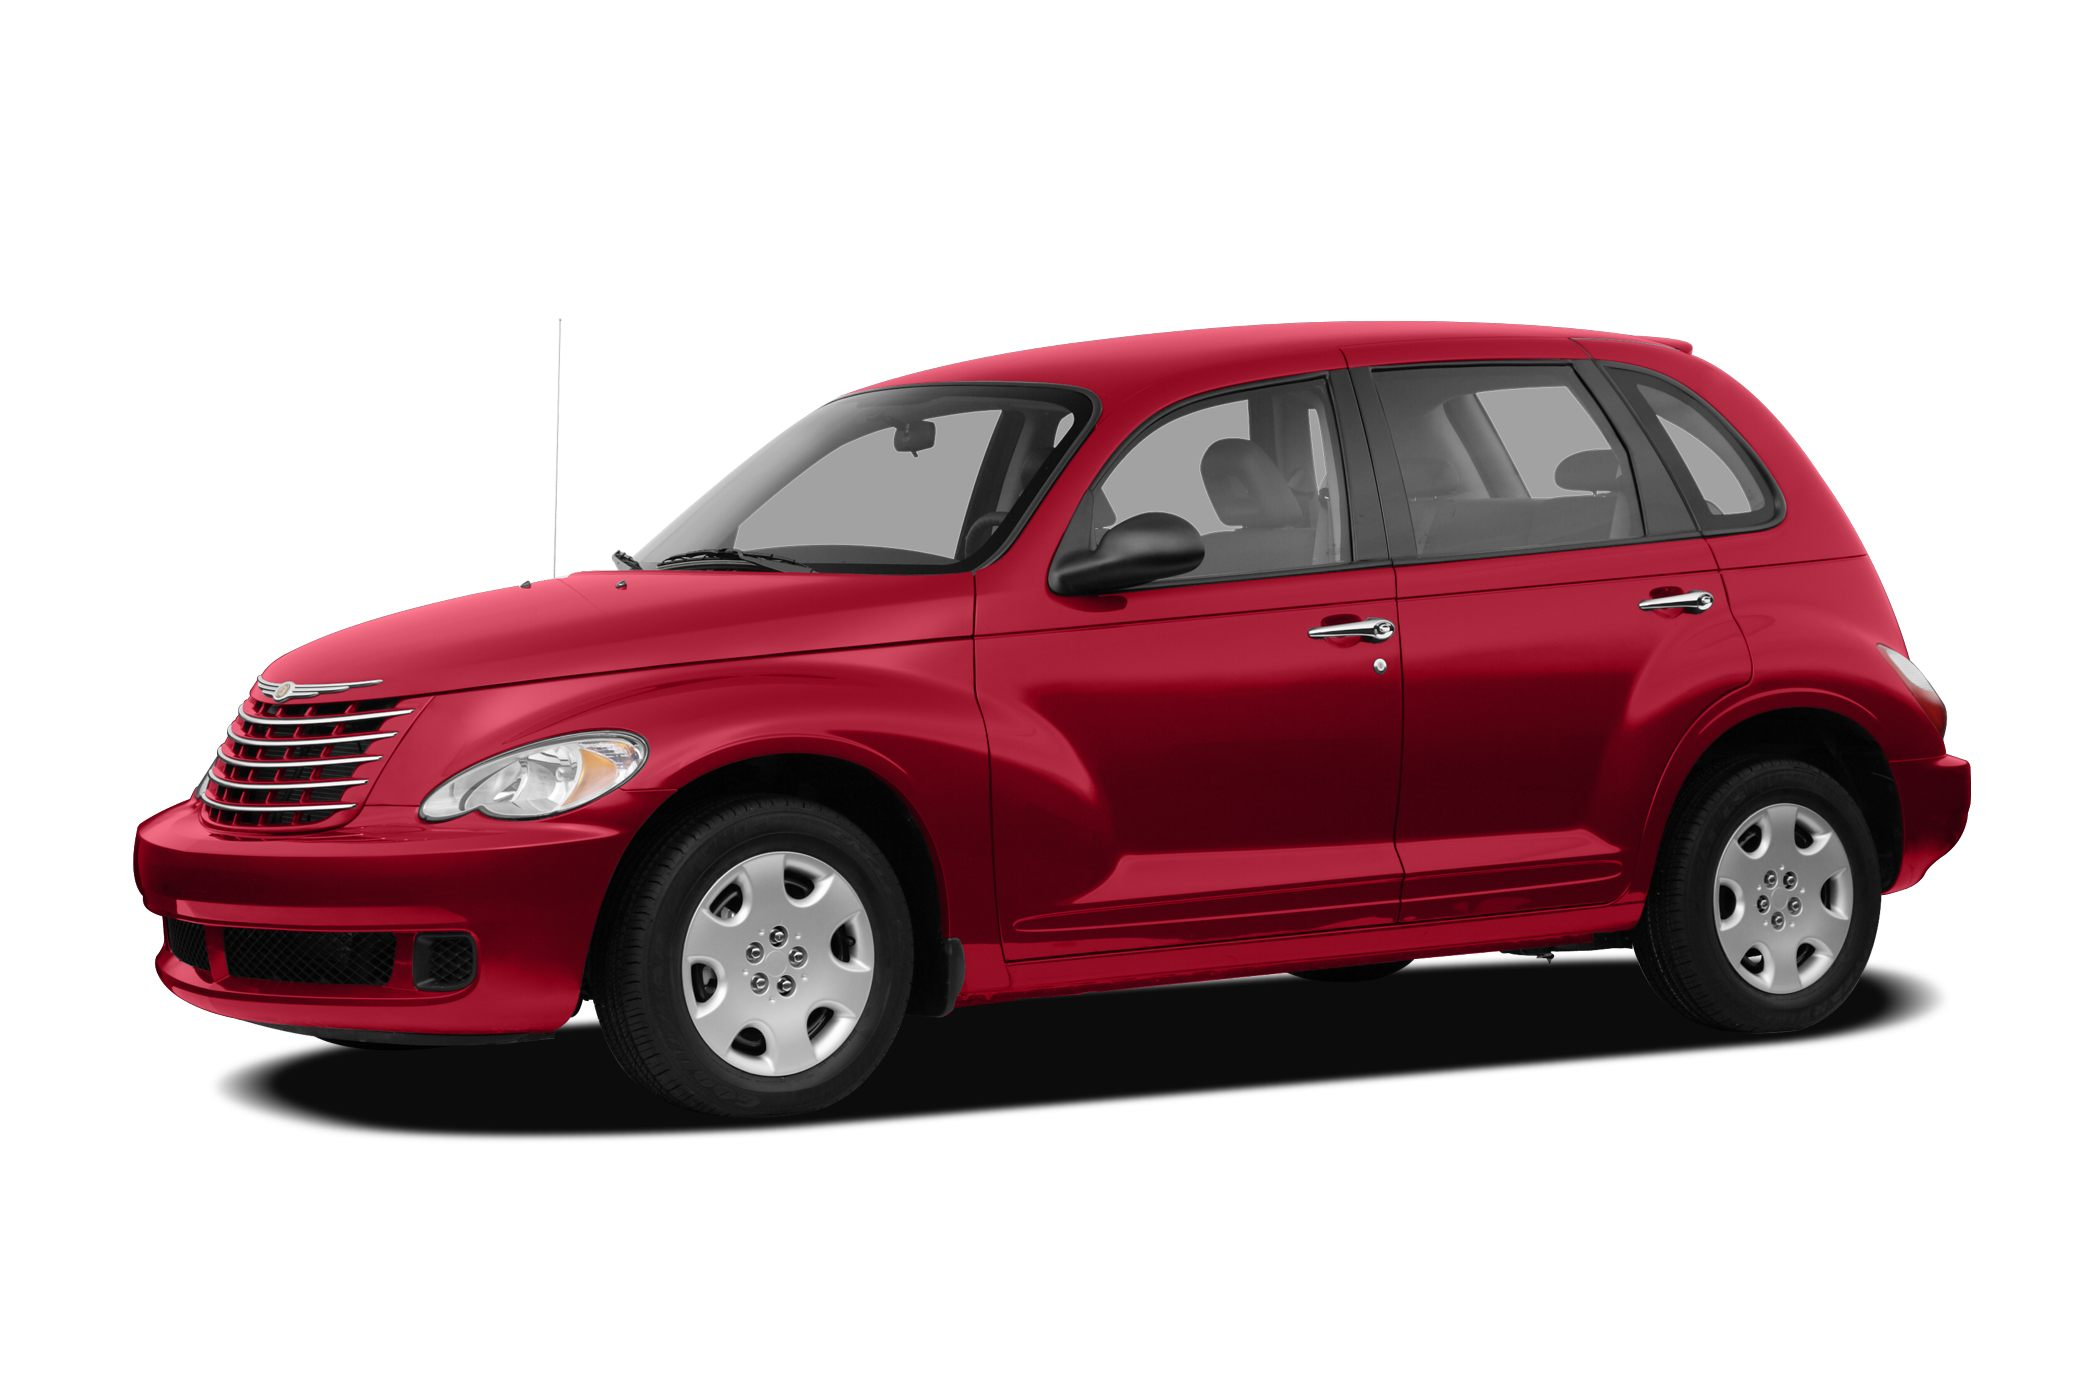 2010 Chrysler PT Cruiser Classic Wagon for sale in La Porte for $10,744 with 36,339 miles.